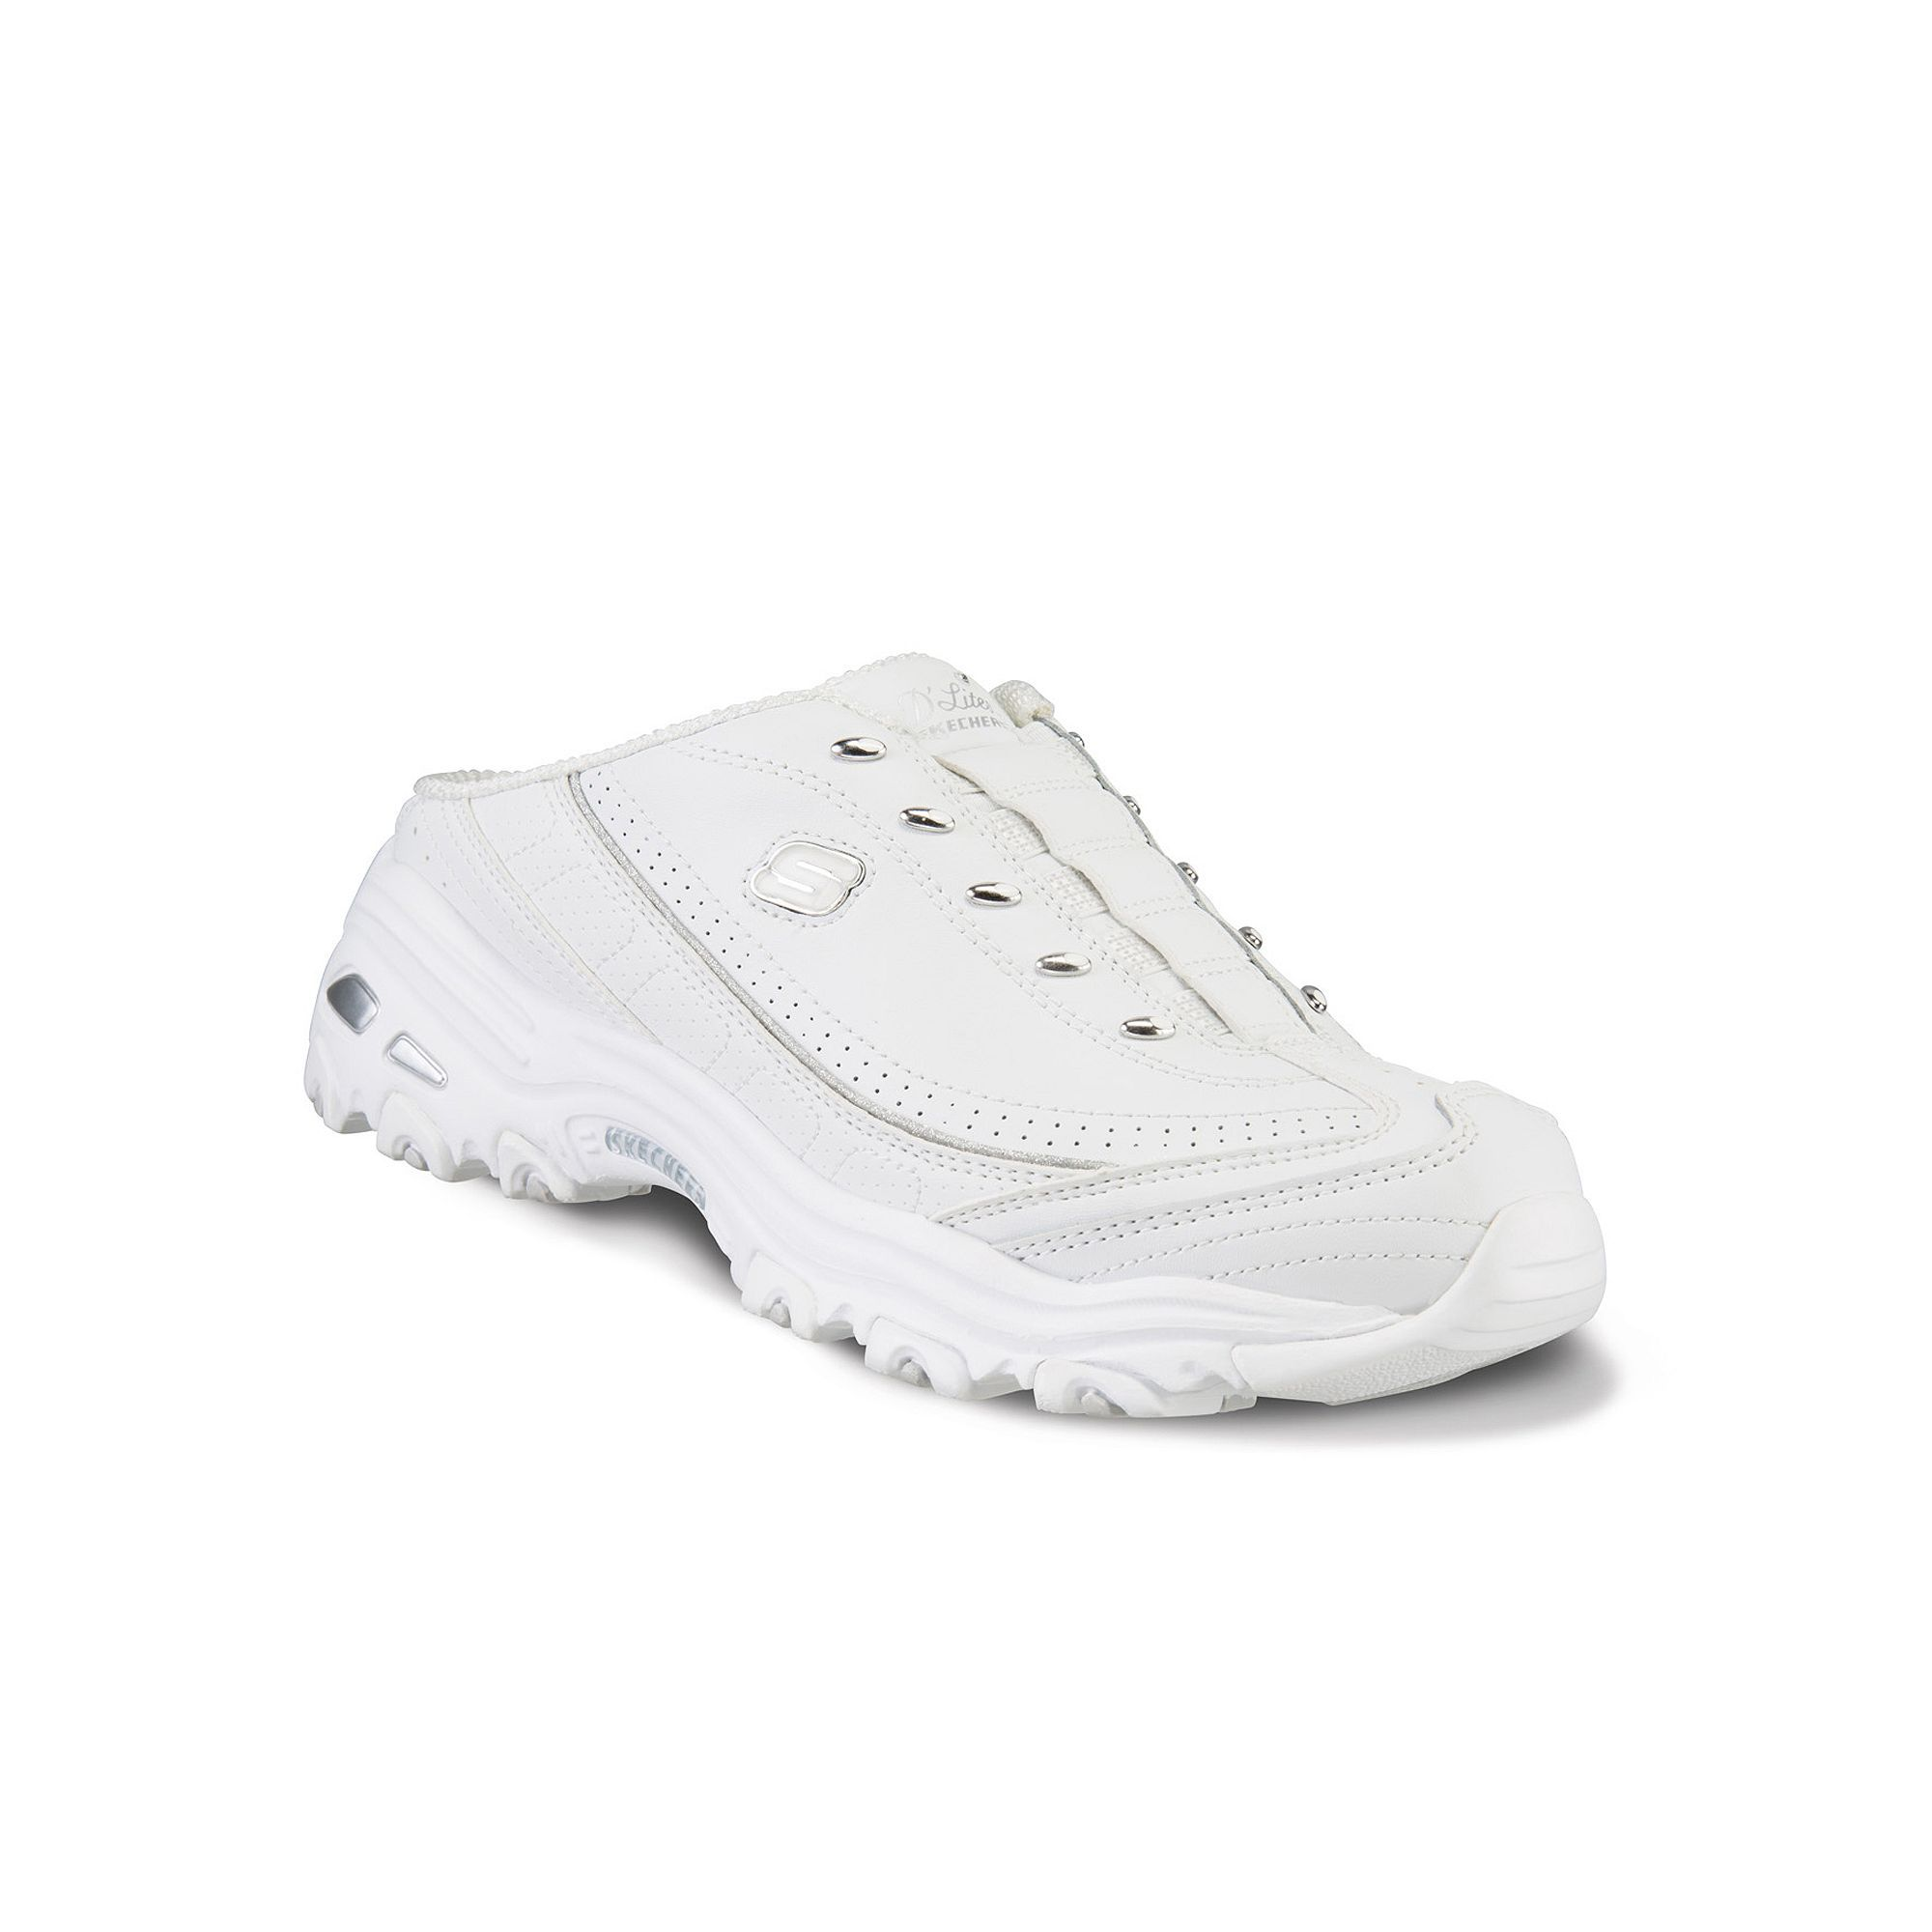 3aab809f25c Skechers D'Lites Bright Sky Women's Slip-On Clog Sneakers, Size: 8.5 Wide,  White Oth